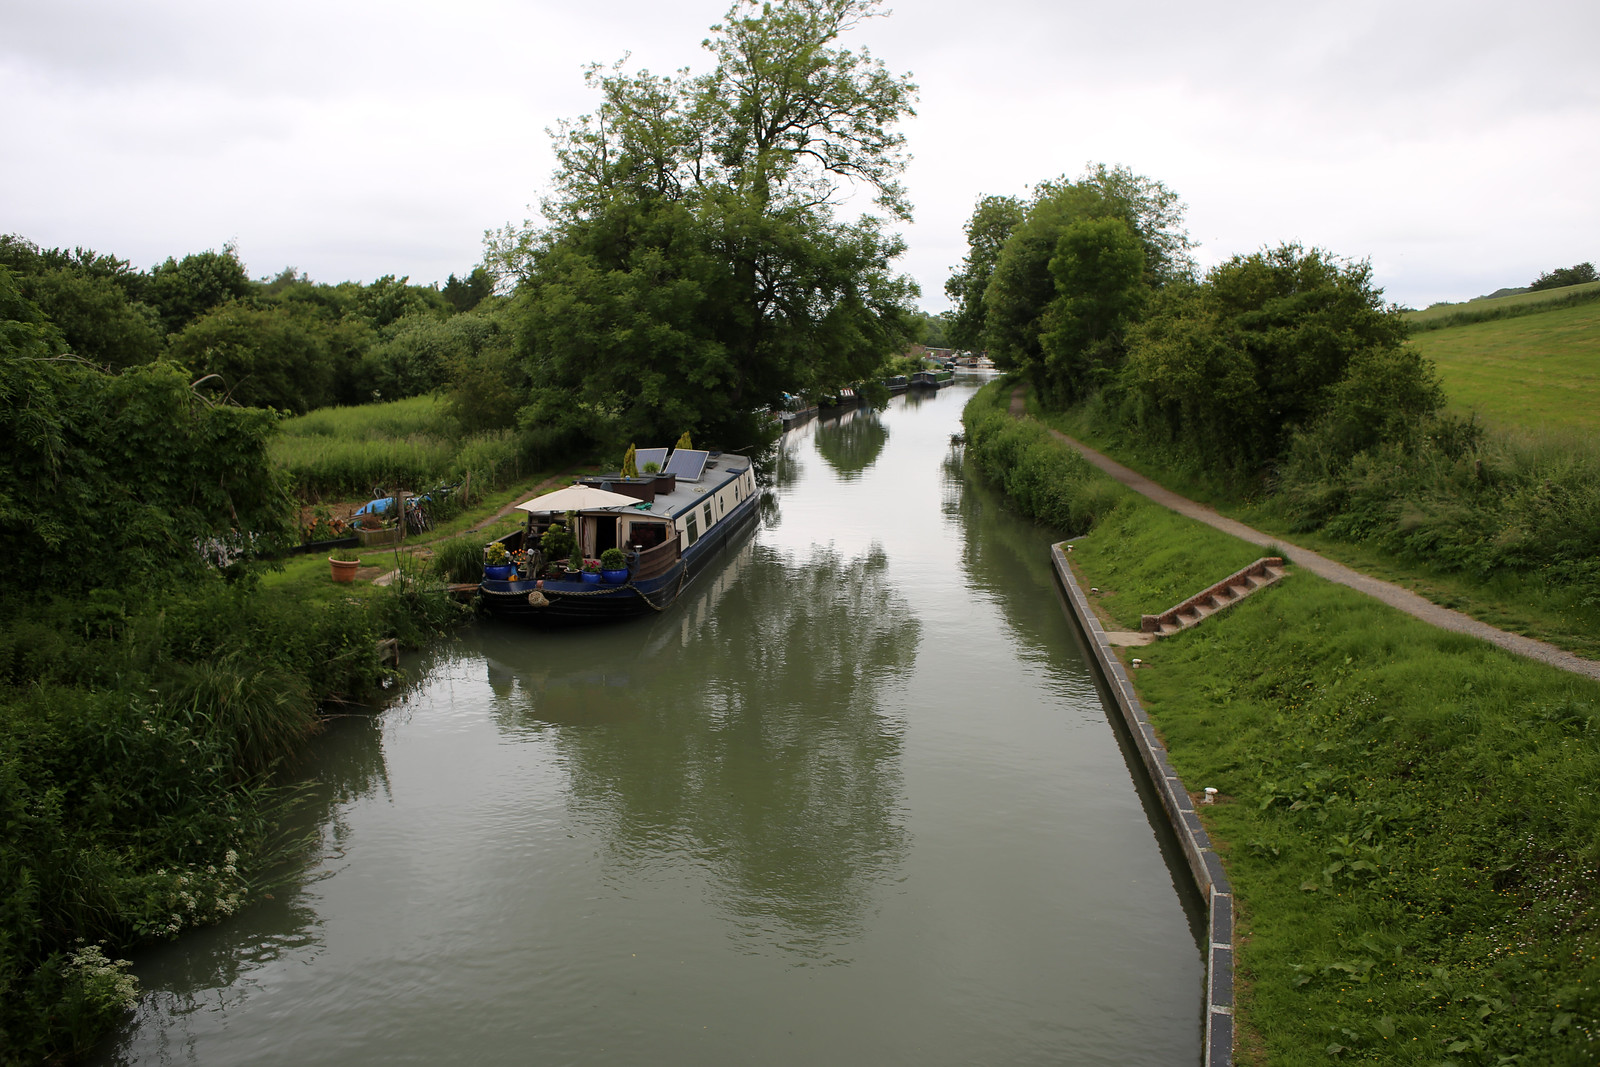 The Kennet & Avon Canal at Great Bedwyn